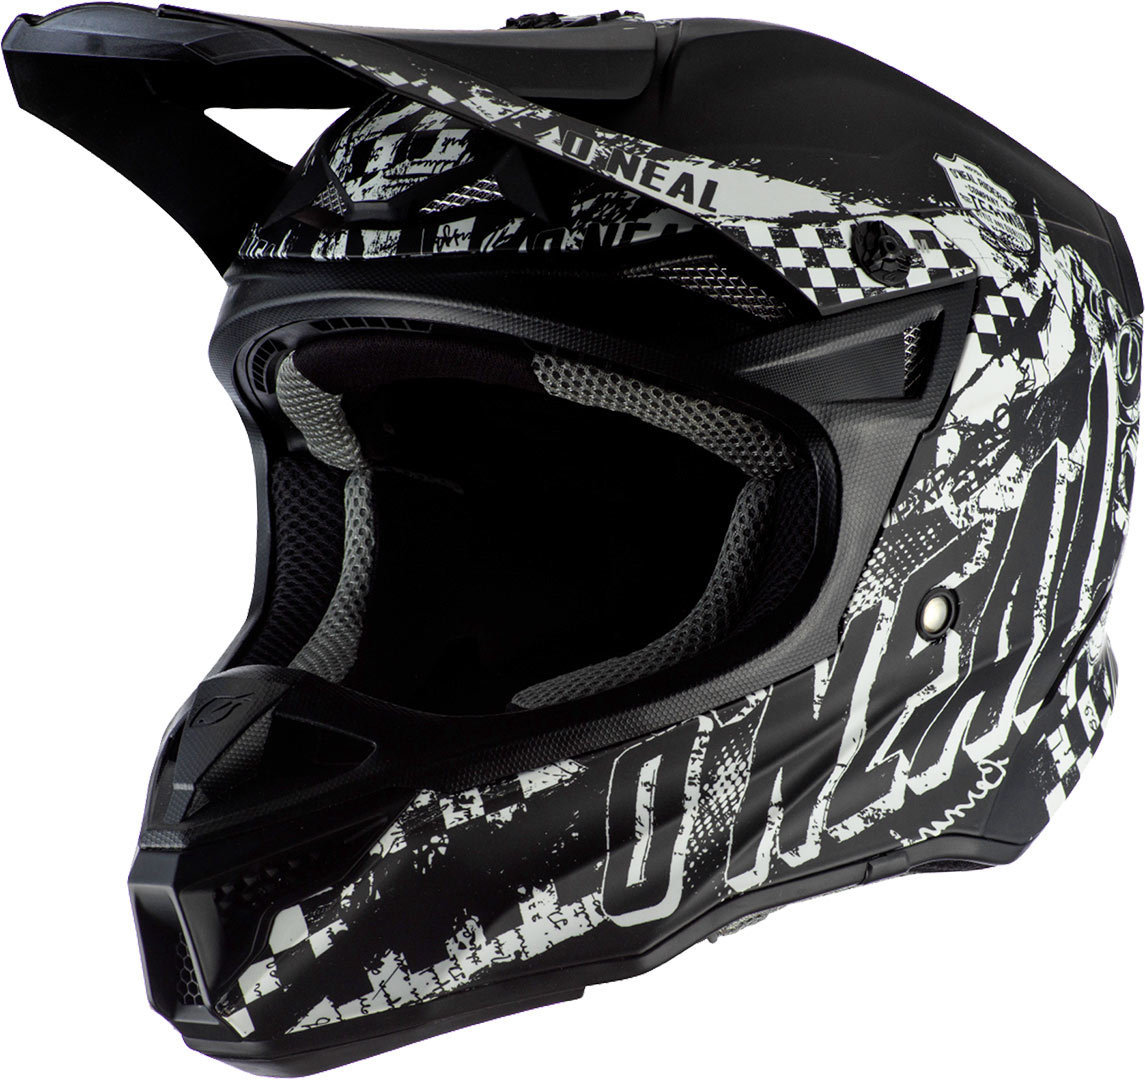 Oneal 5Series Polyacrylite Rider Motocross Helm, schwarz-weiss, Größe XL, schwarz-weiss, Größe XL